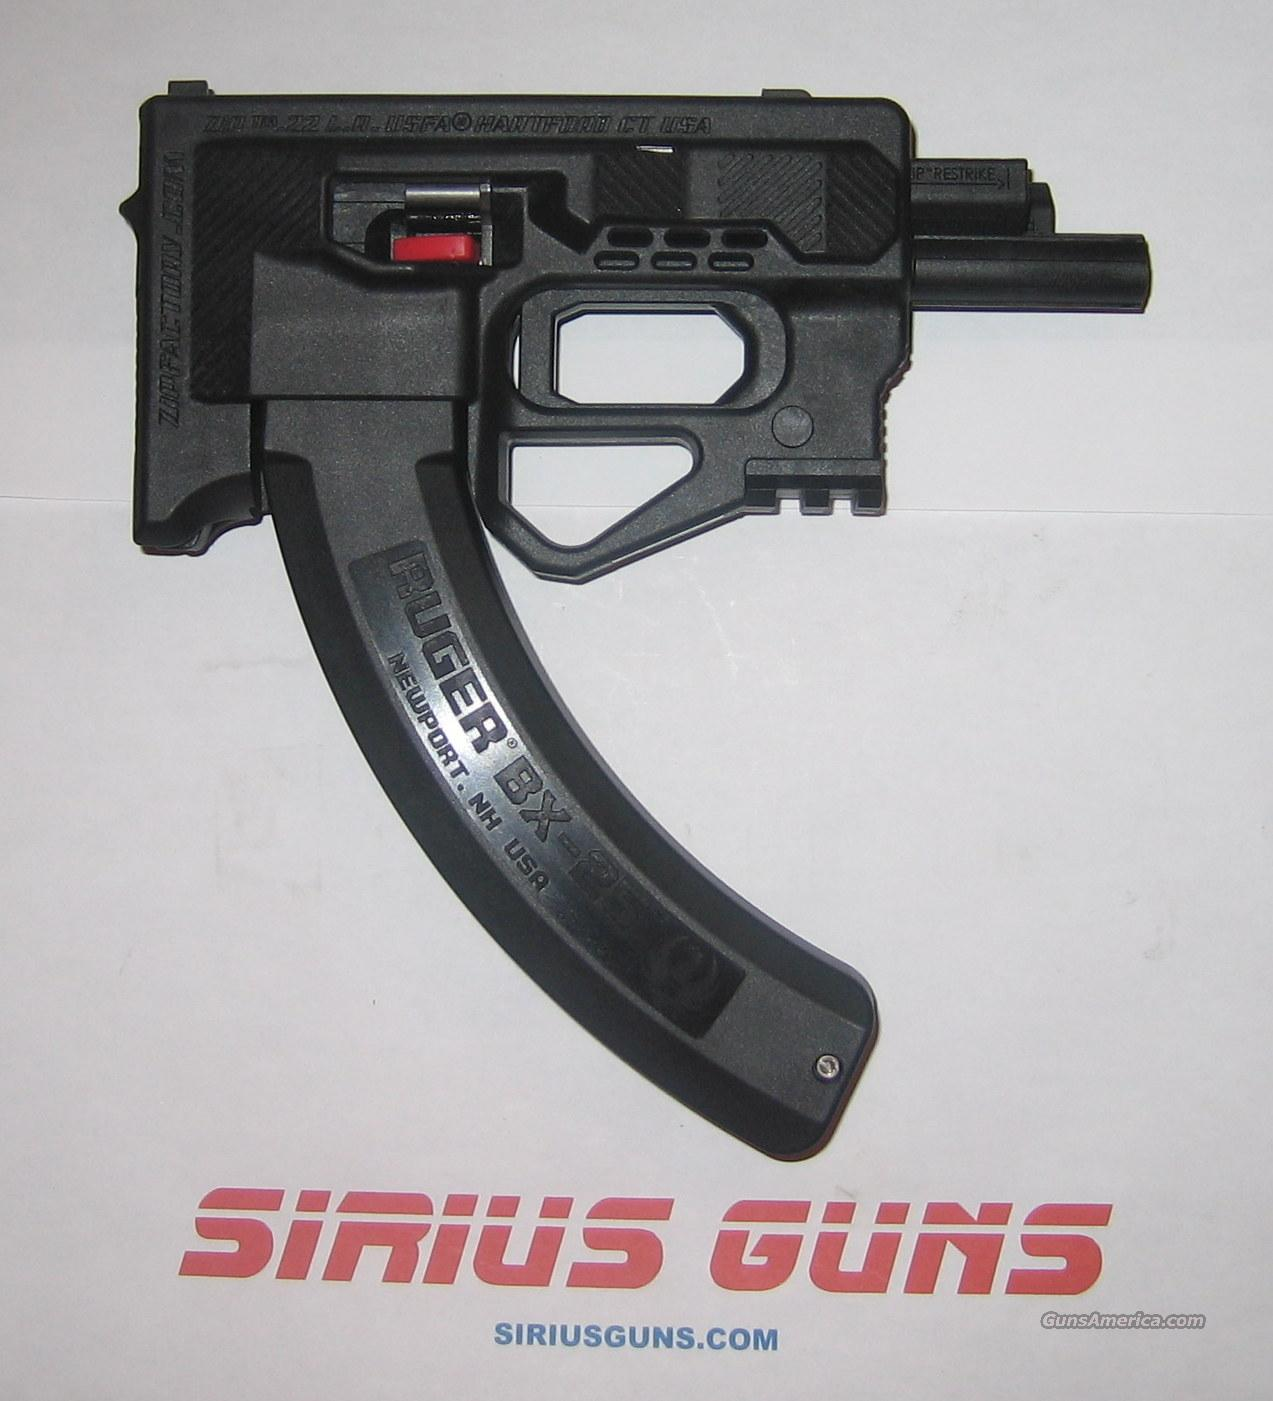 U.S. Firearms ZIP22  w/ RUGER BX-25 Factory Mag ZIP 22  22LR  Guns > Pistols > United States Patent Firearms Revolvers/Pistols